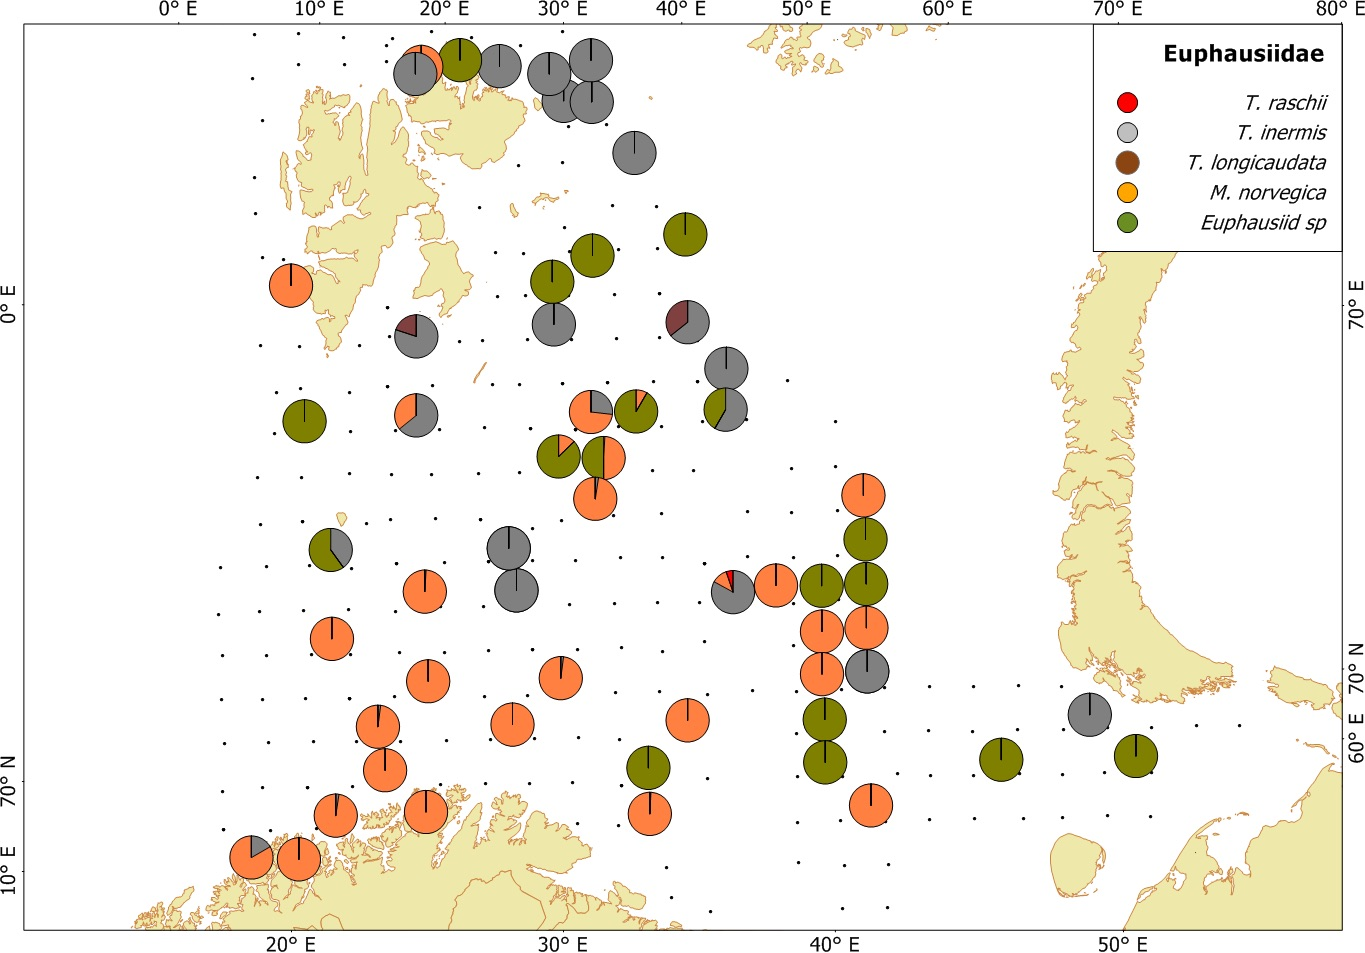 Figure 3.3.11. Krill species distributions based on trawl stations both day and night, covering the upper water layers (0-60 m) of the Barents Sea in August-October 2017. The proportions are based on wet-weights.